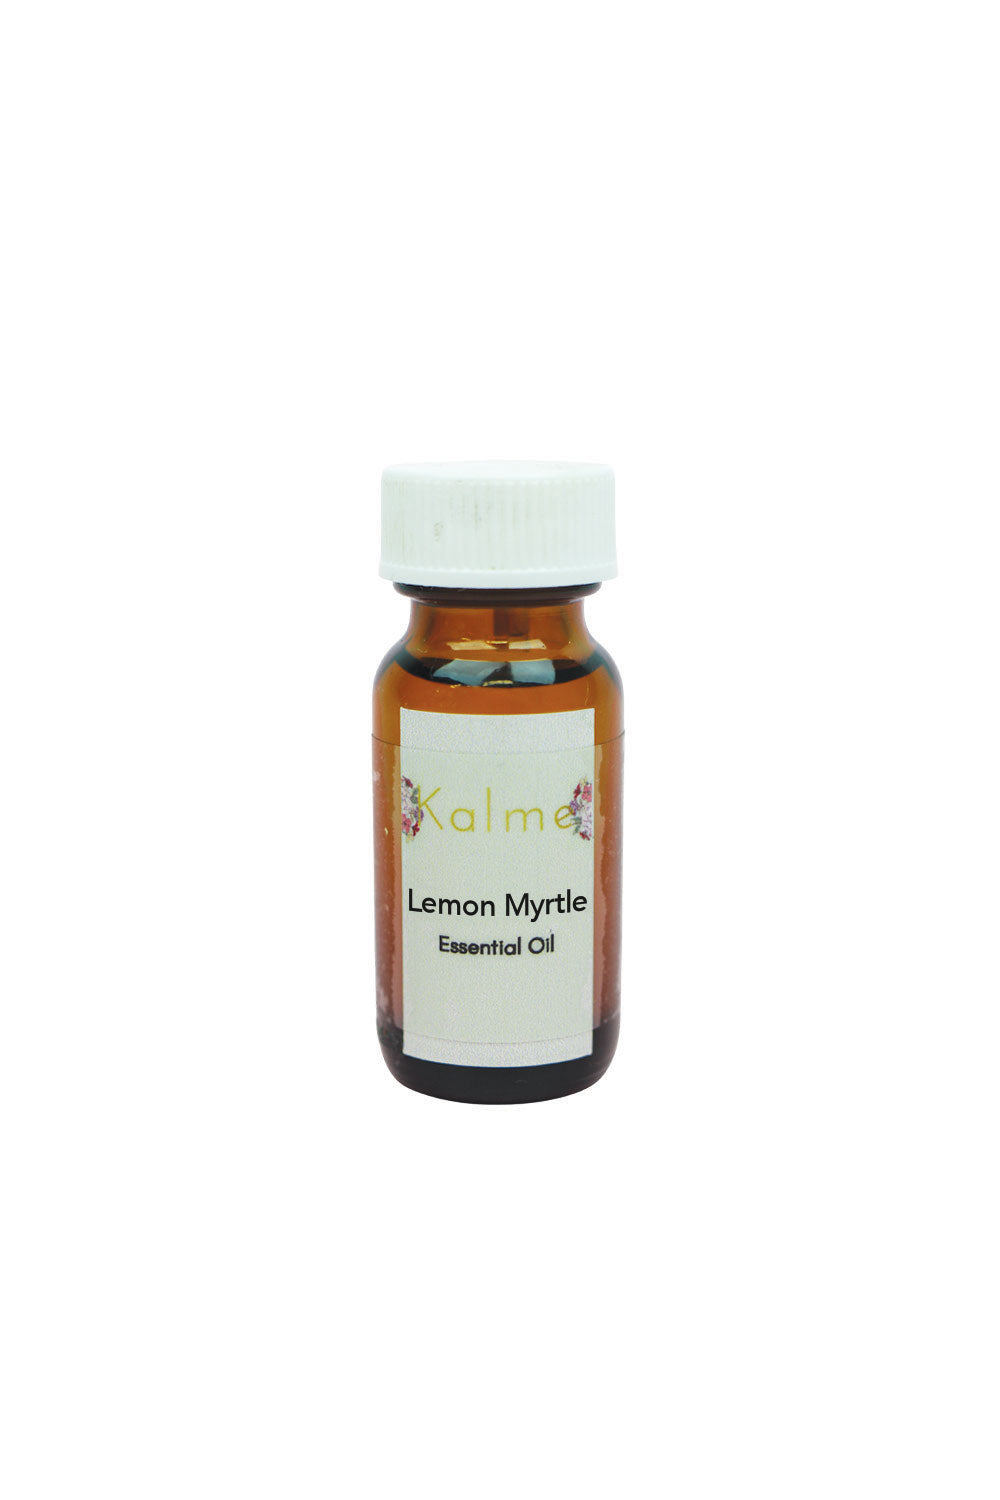 Kalme Essential Oil-Lemon Myrtle - Kabana Shop